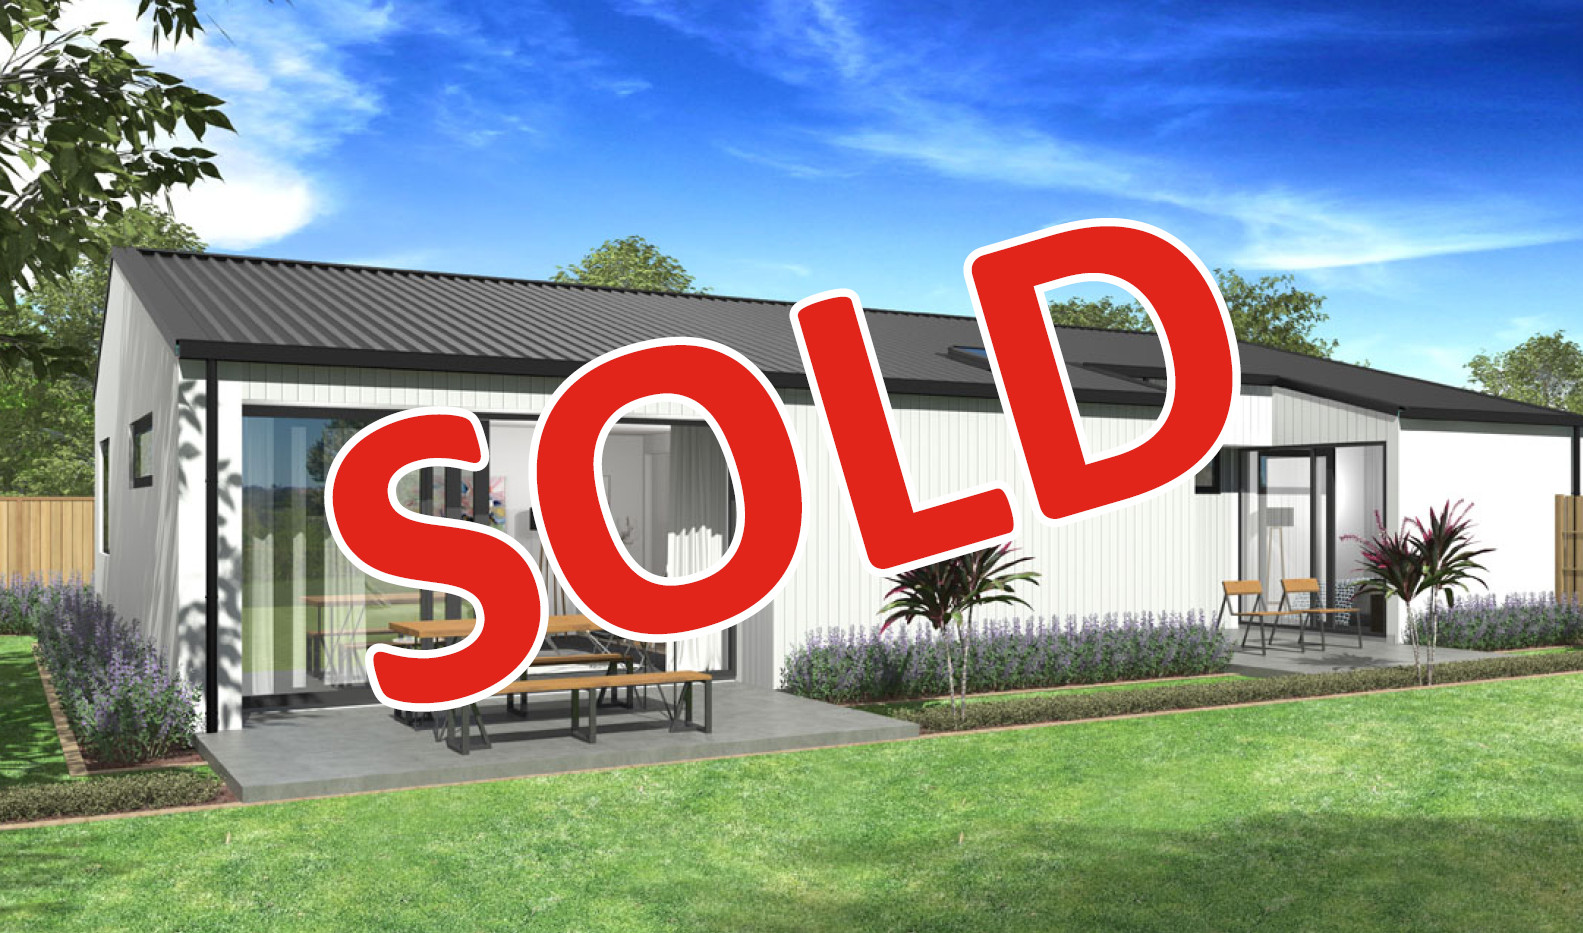 SOLD_Graphic_Lot159-Unit8.jpg